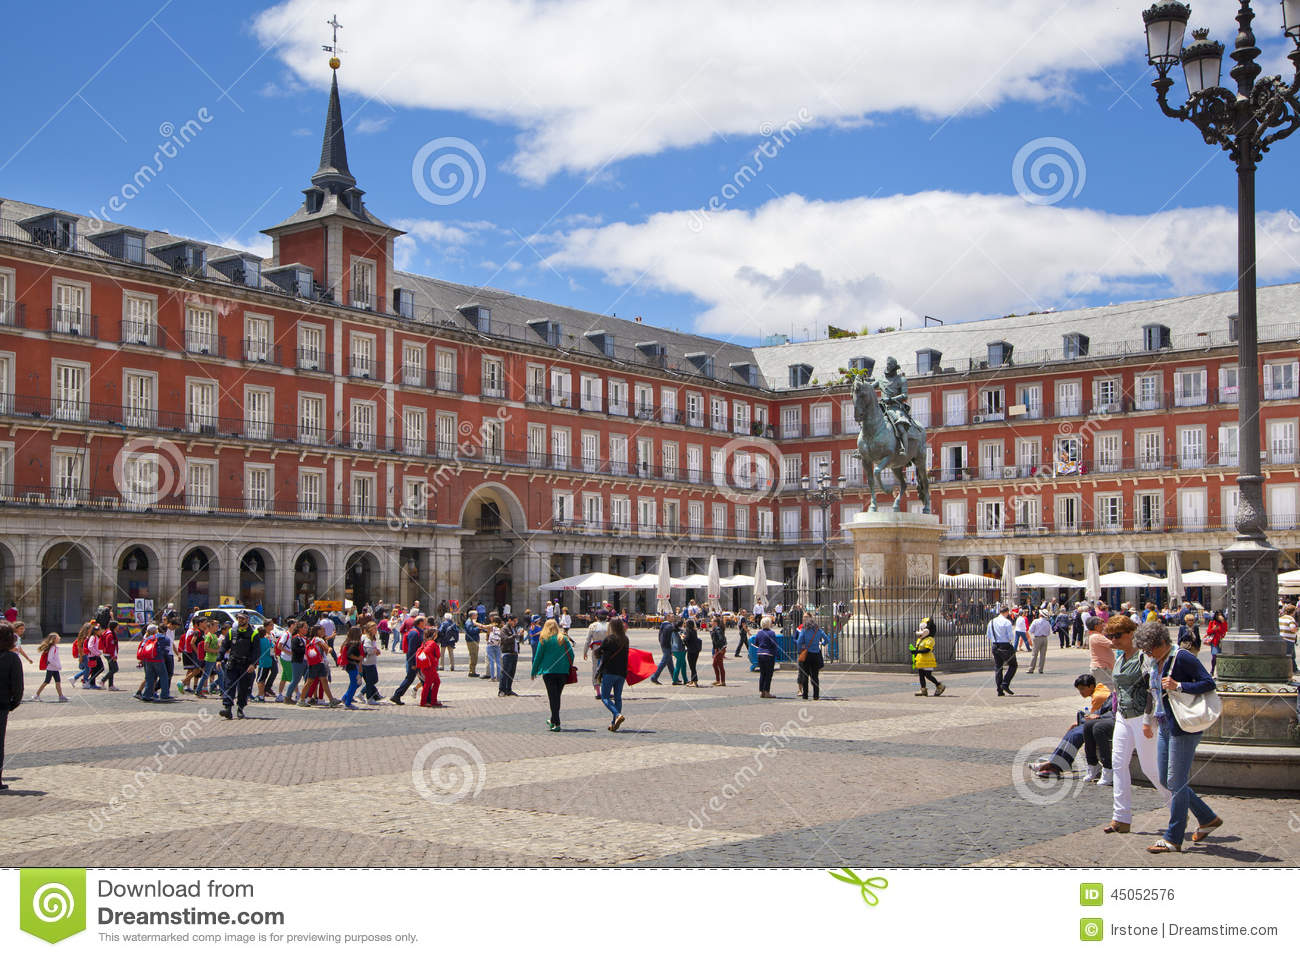 MADRID, SPAIN - MAY 28, 2014: Plaza Mayor and Statue of Philip III in front of his house